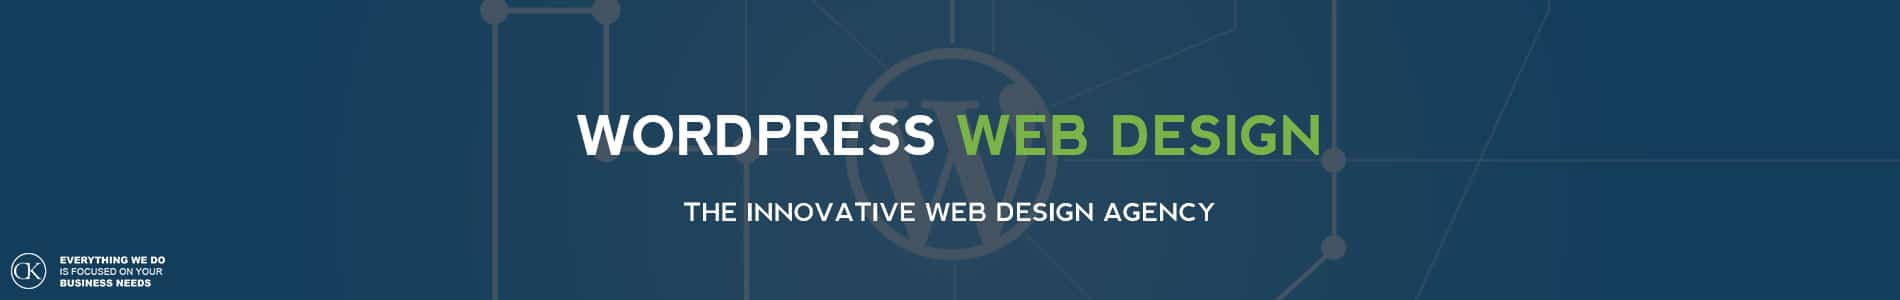 WordPress web design dublin - Featured image